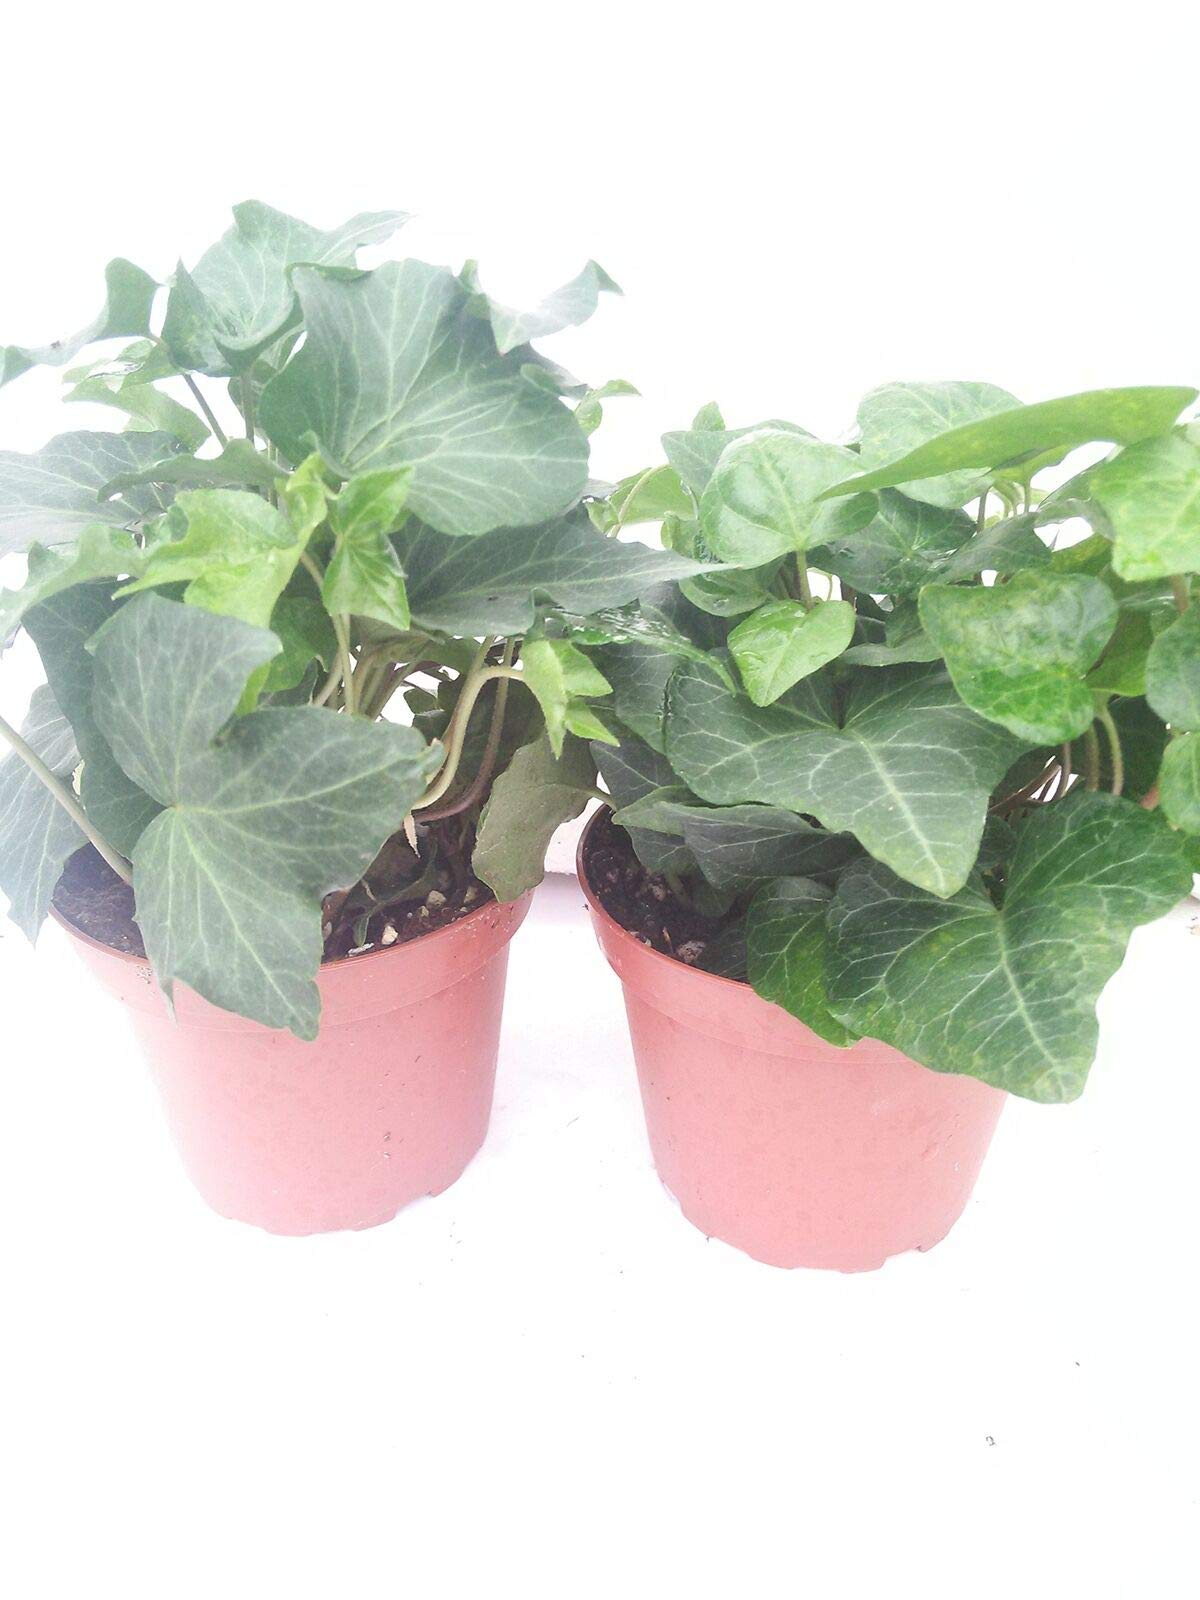 Two Ivy Plants Baltic English Hardy Groundcover 4''Pot Plant Hedera Helix Outdoor